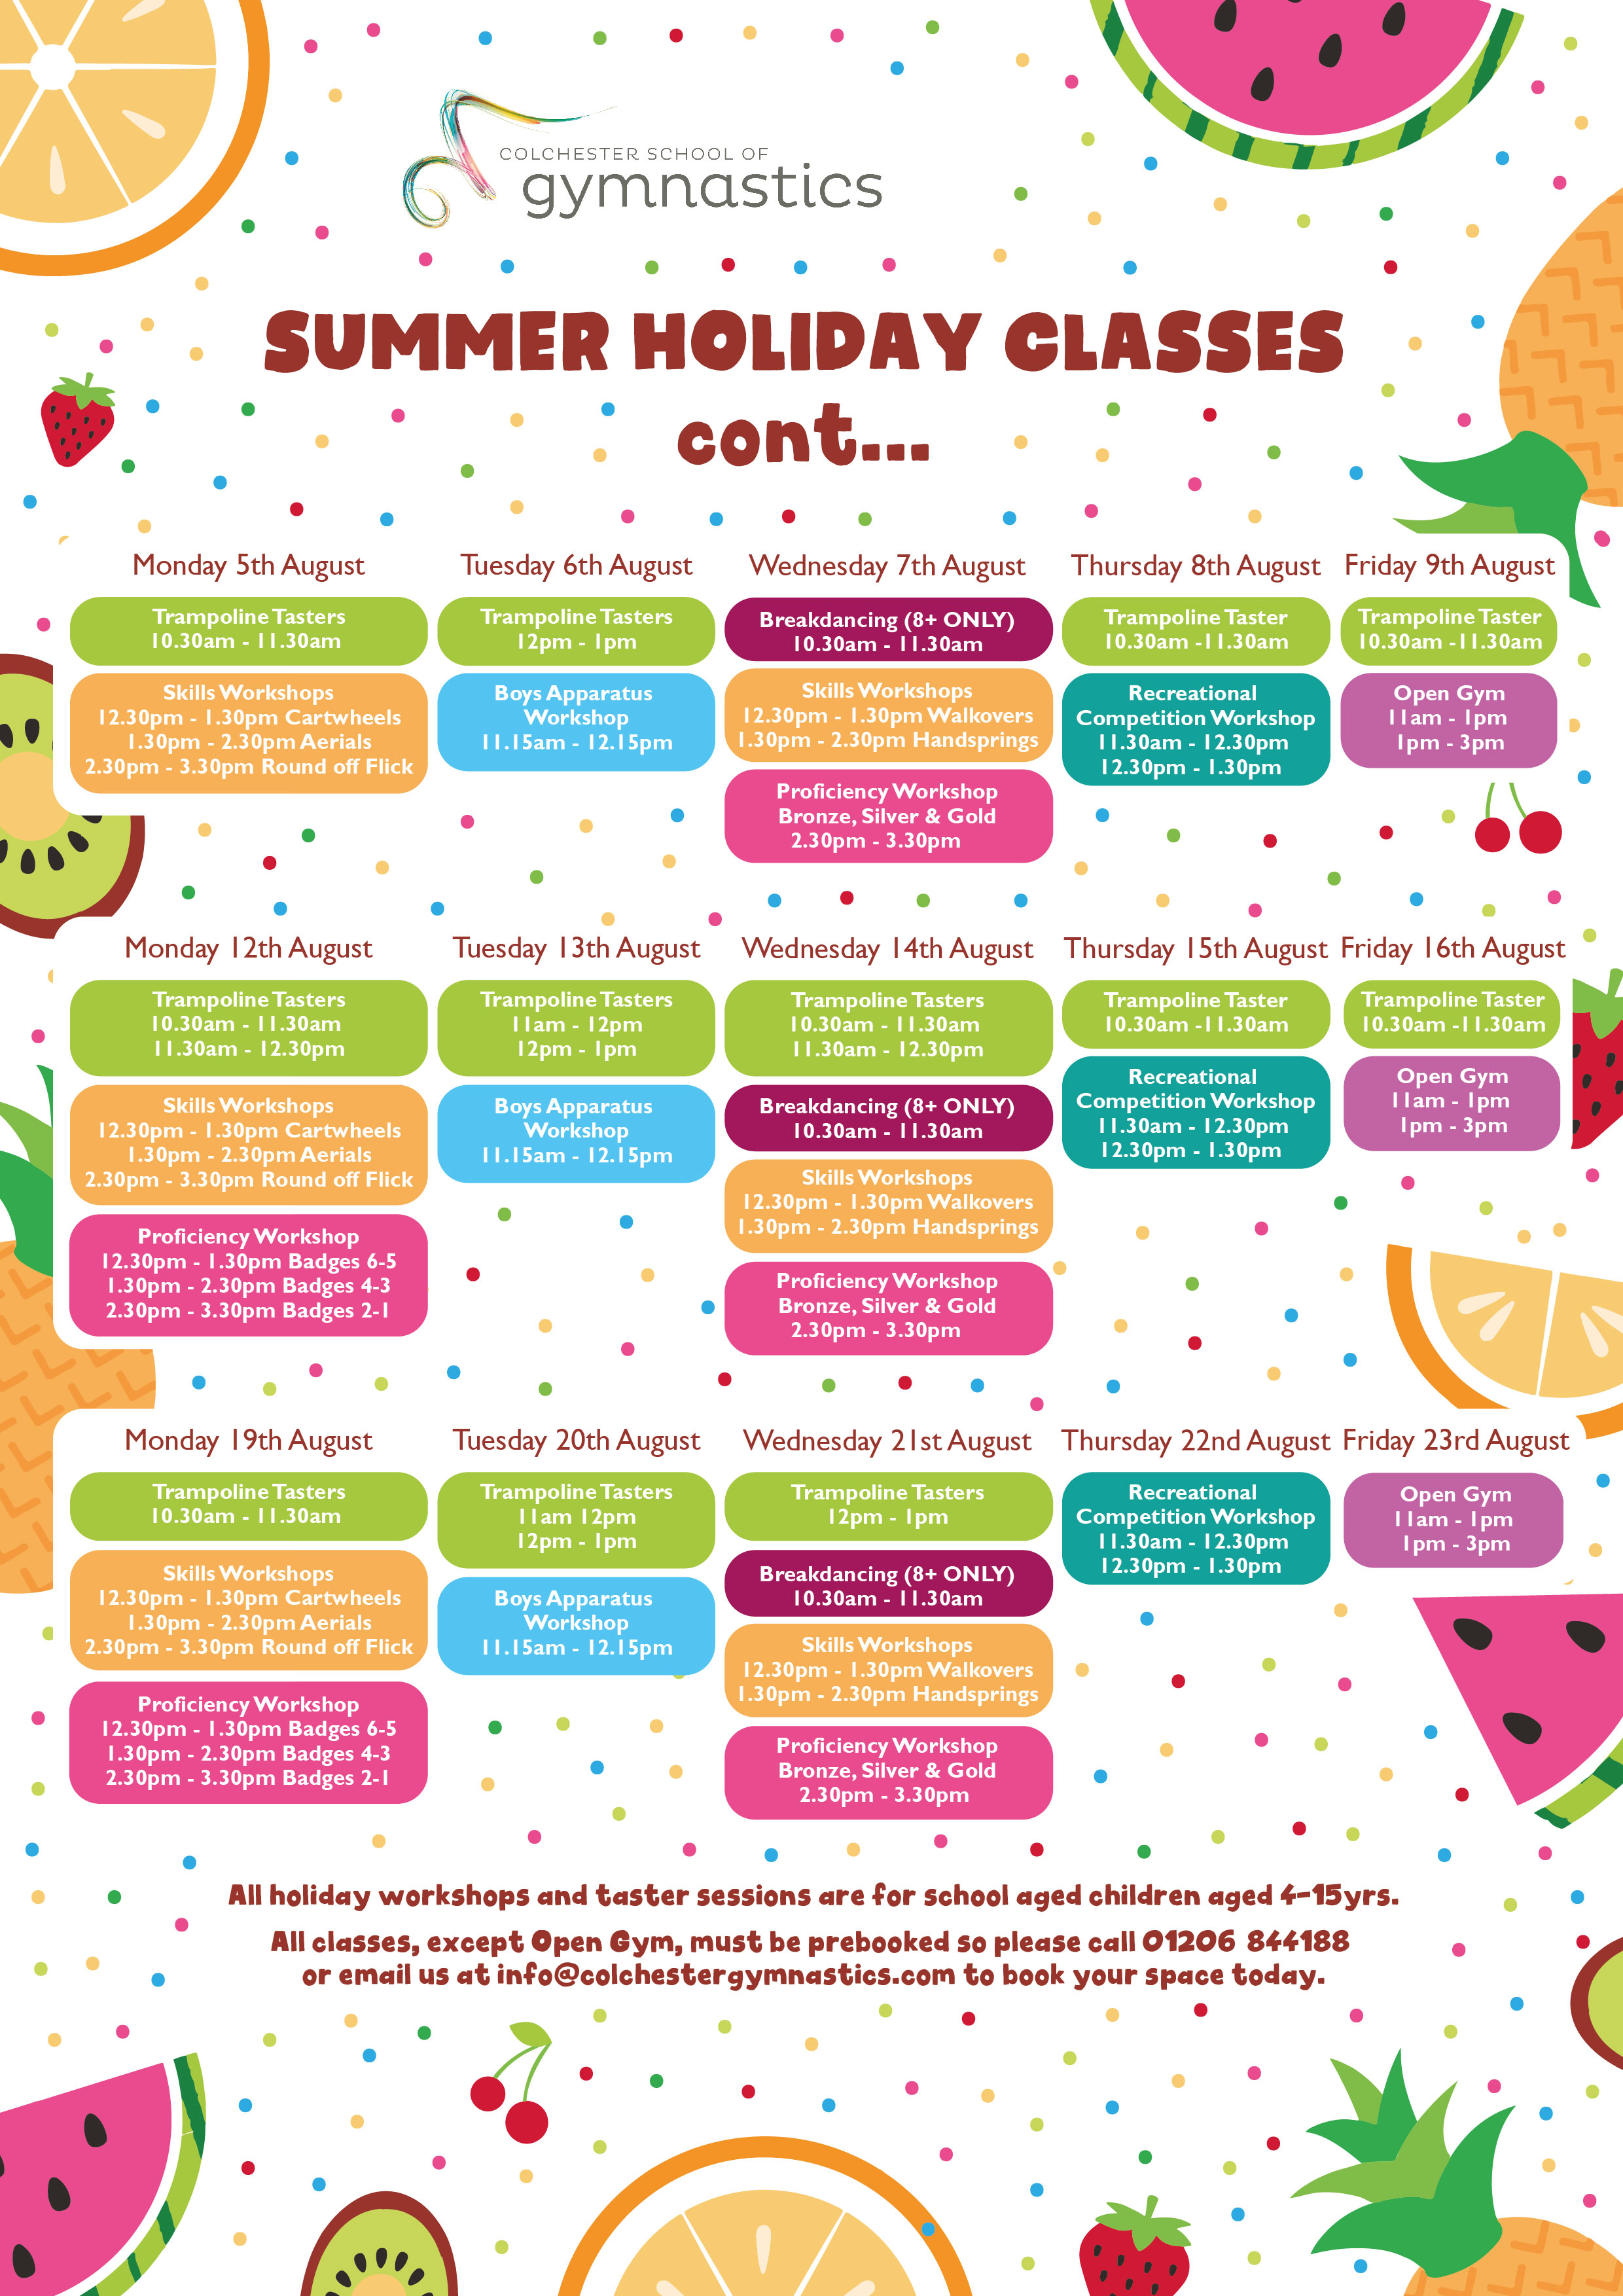 CSG Summer Holiday Poster 2019 Fruit PG 2